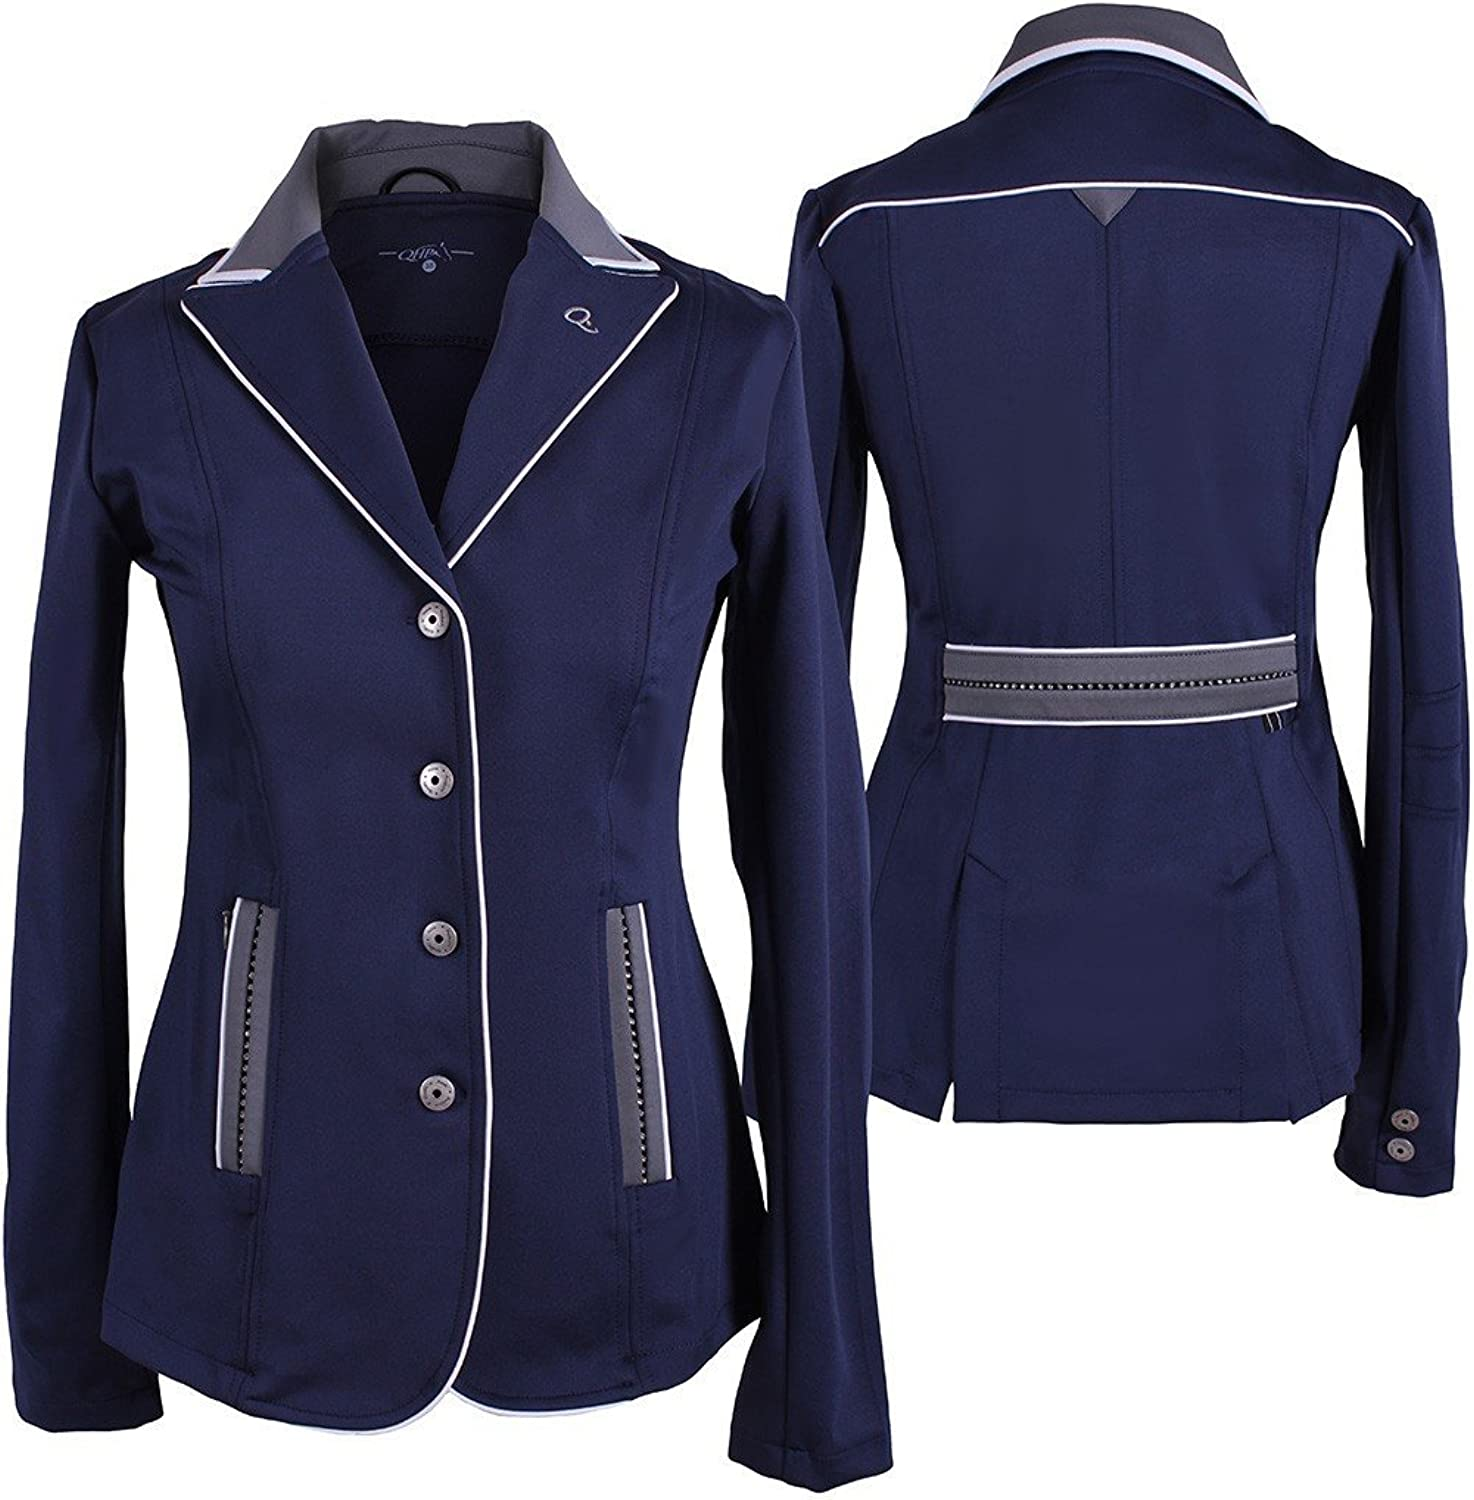 QHP Olivia Womens Competition Jackets